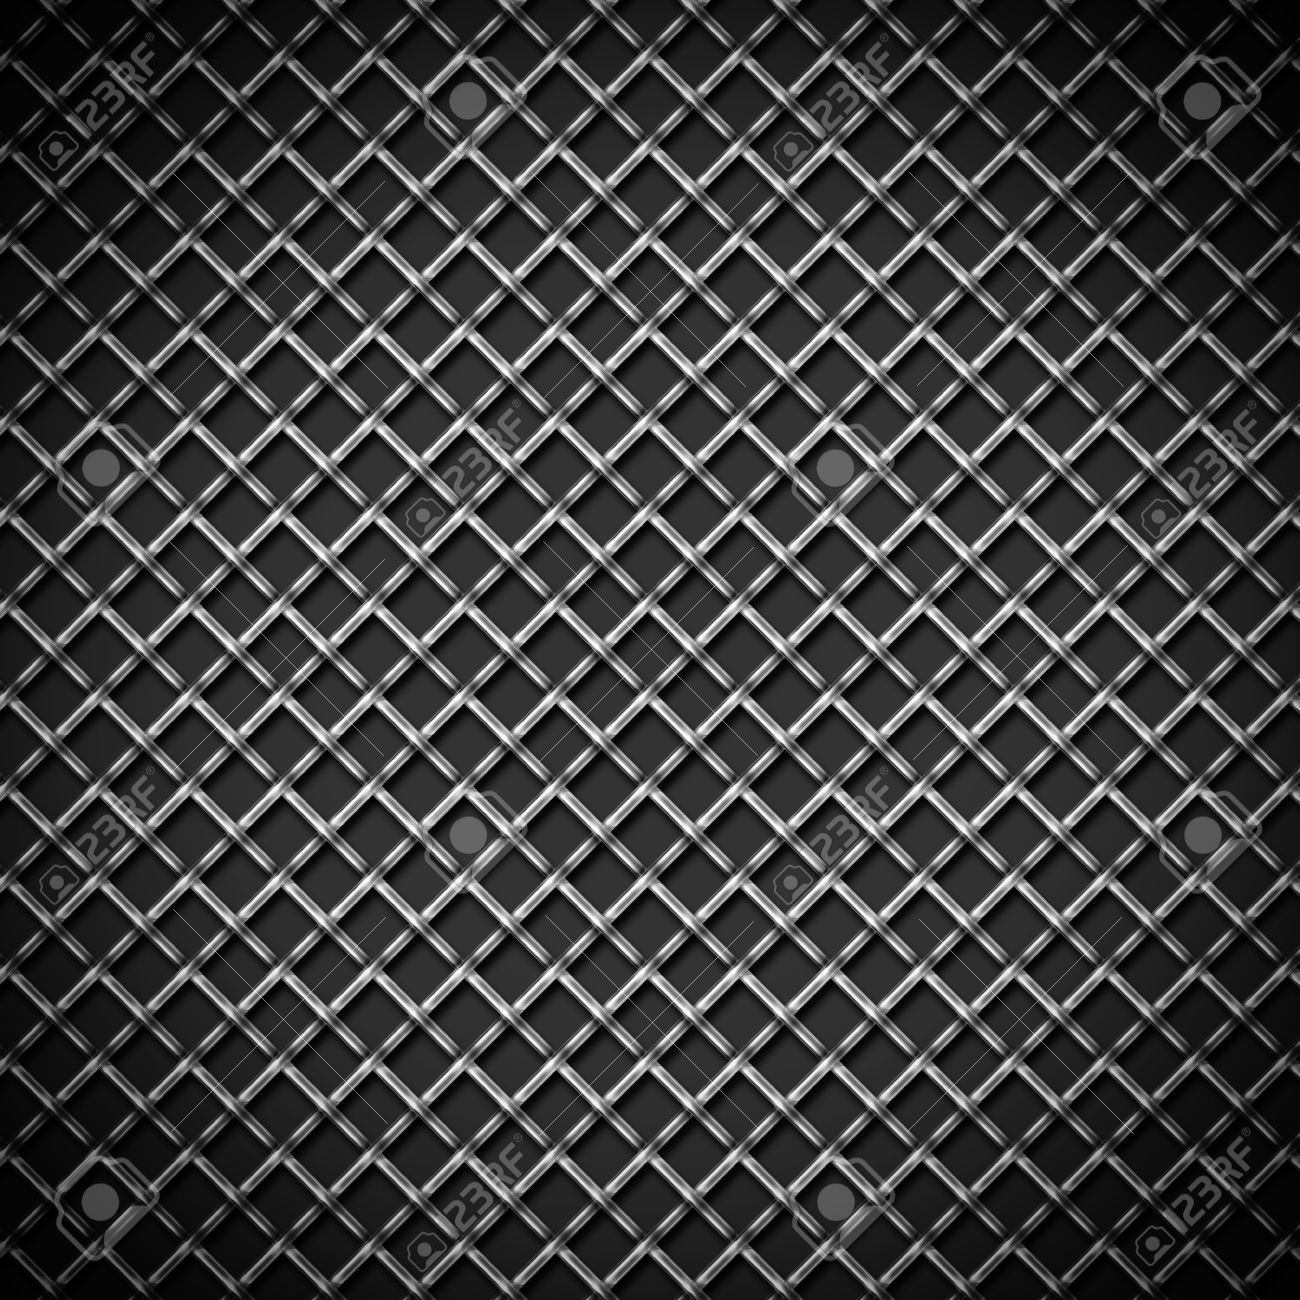 Metal Chain Link Fence Background Stock Photo, Picture And Royalty ...